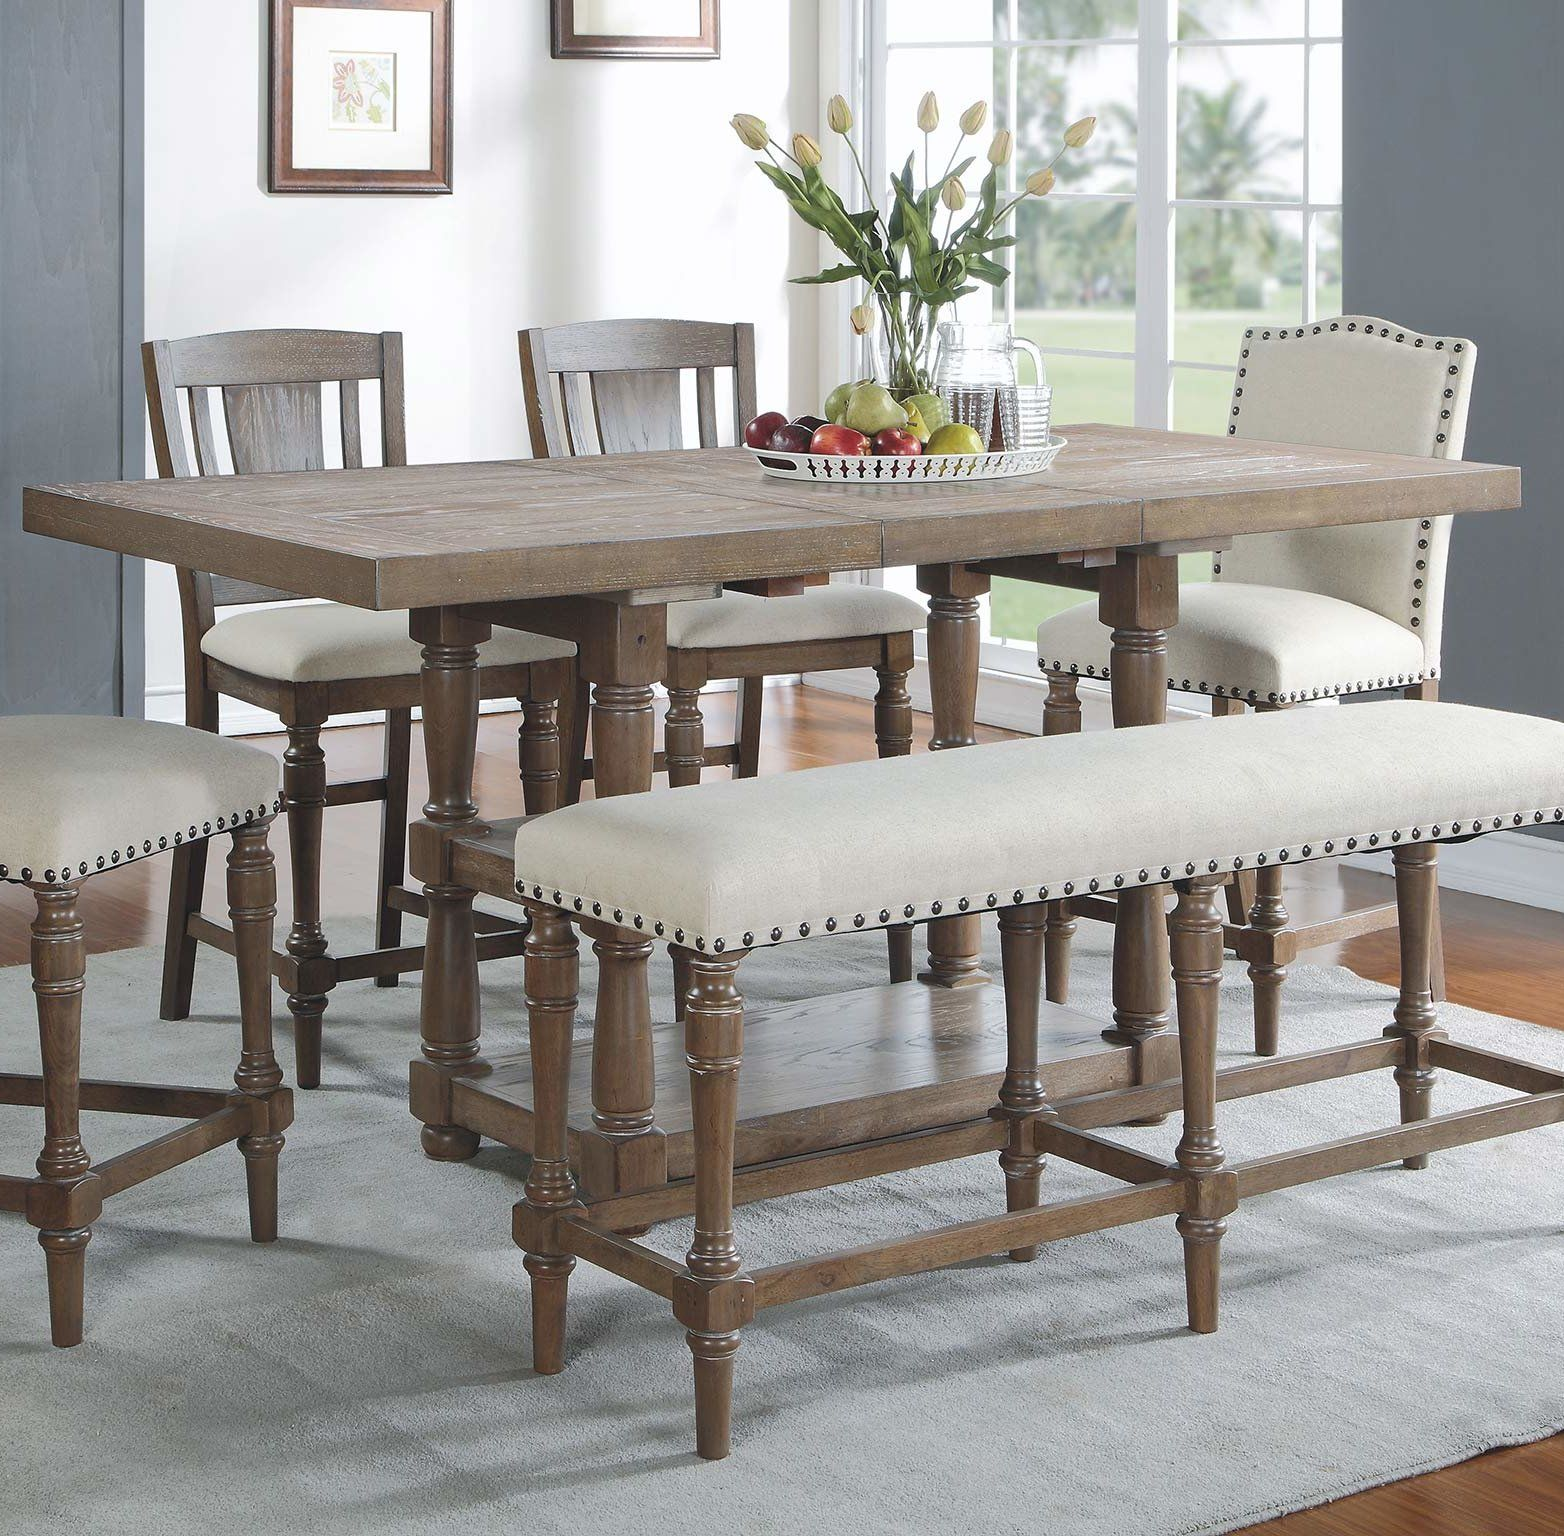 Holland Counter-Height Extendable Dining Table  Tall kitchen